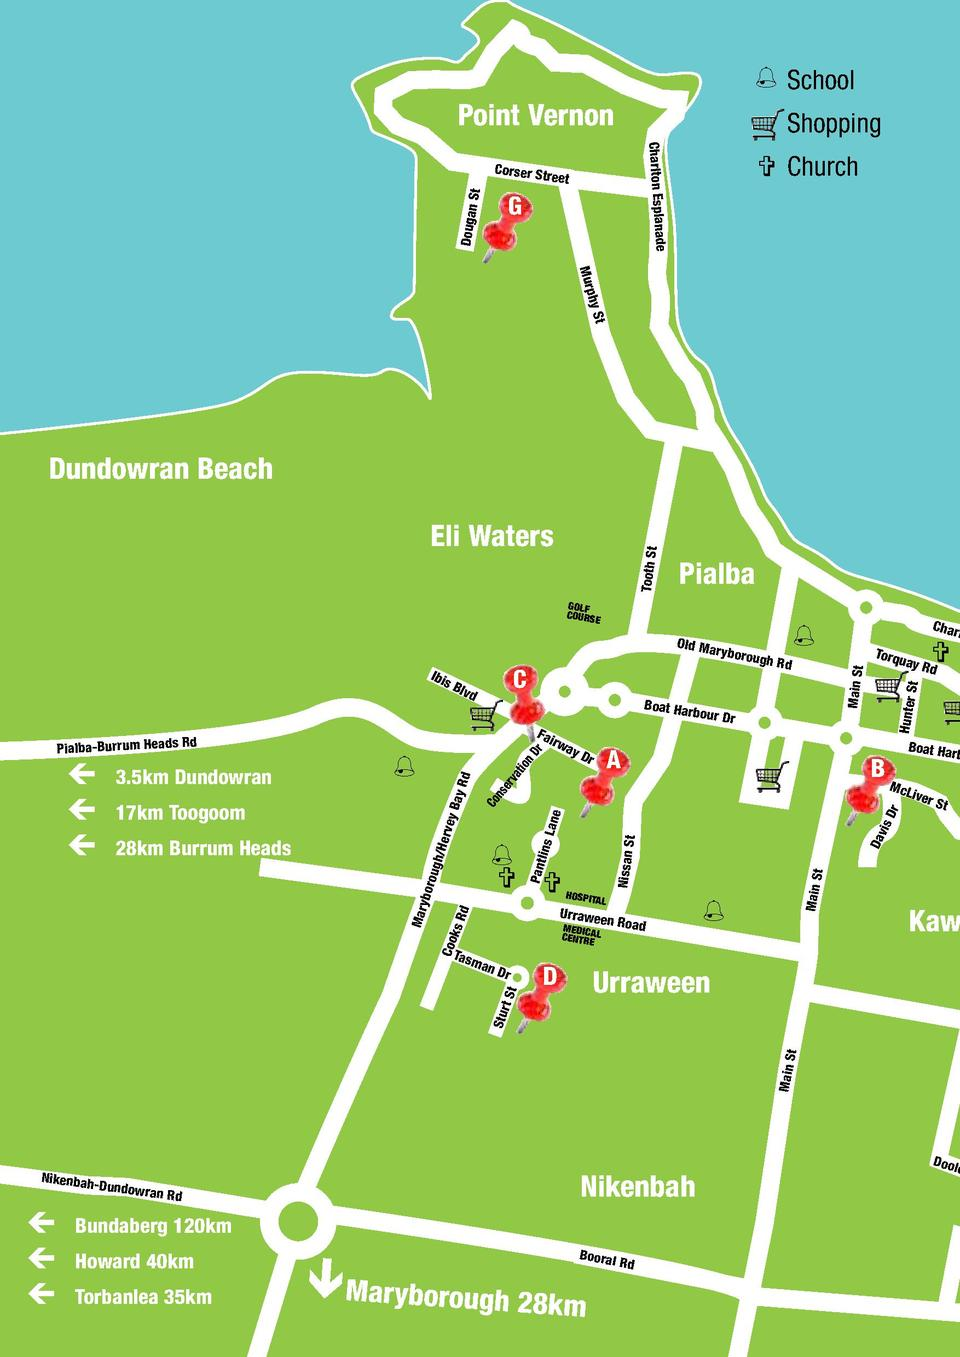 School  Point Vernon  Shopping Charlton Esplanade  Corser St St  reet  Dougan  G      Church  Murp hy St  Dundowran Be...